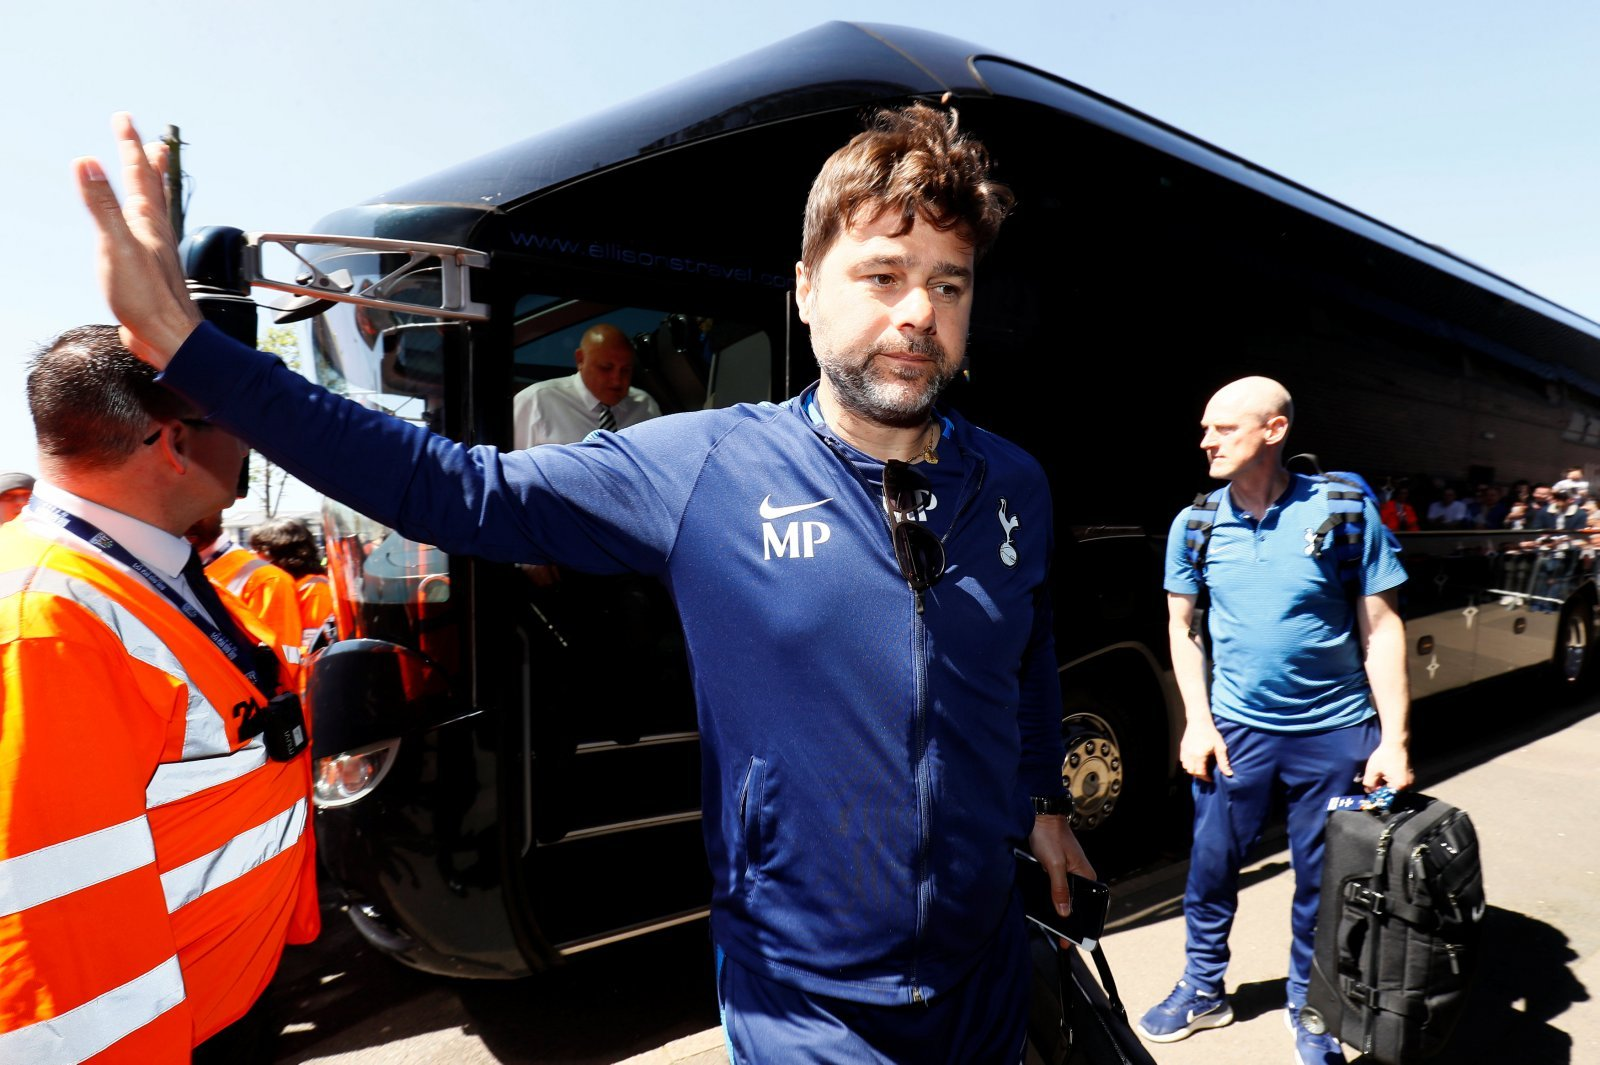 Tottenham fans take to Twitter to slate Pochettino after derby failings